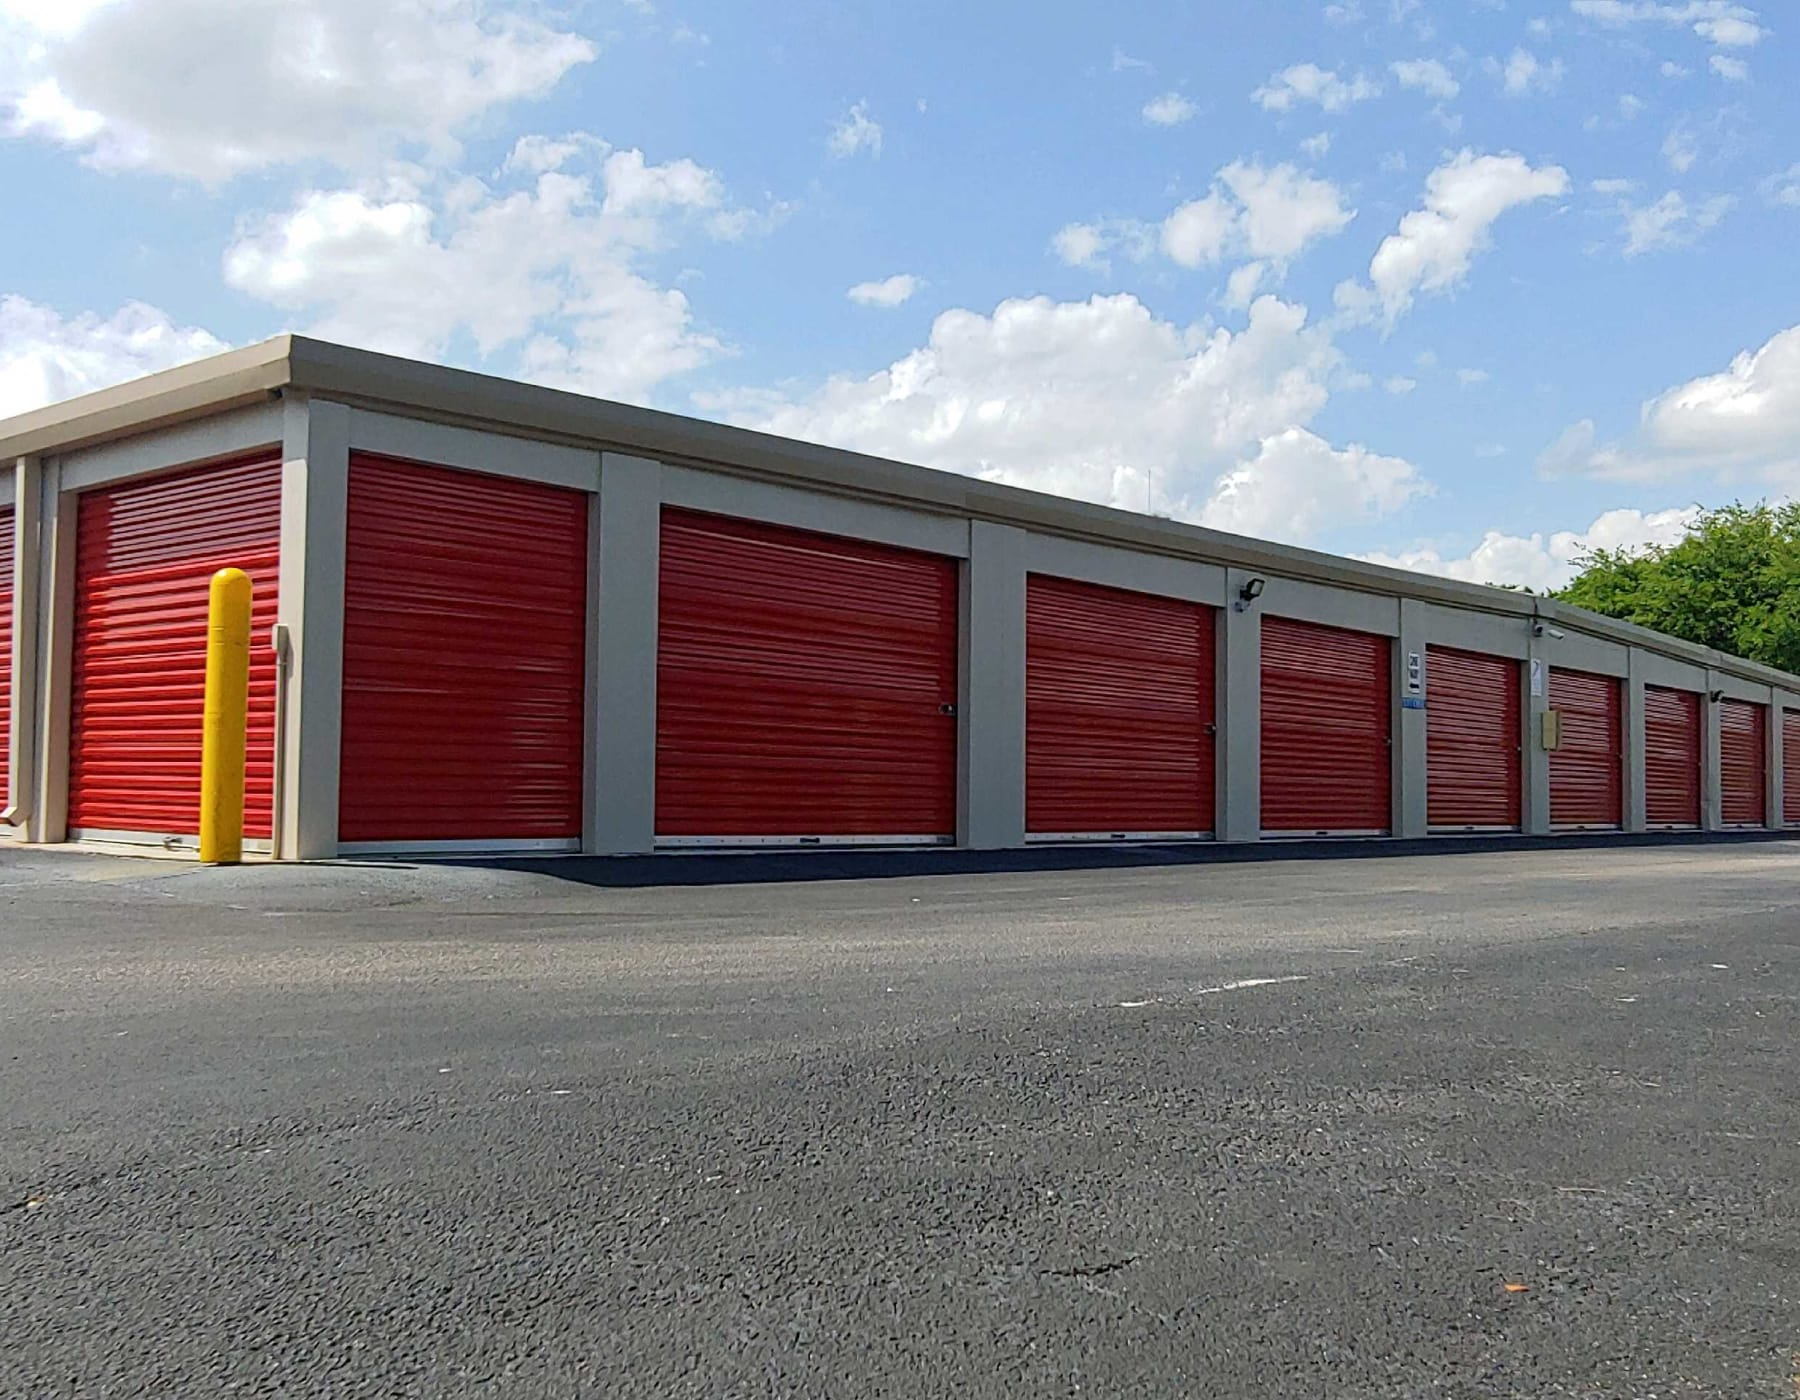 Exterior storage units at StorQuest Self Storage in Odessa, FL